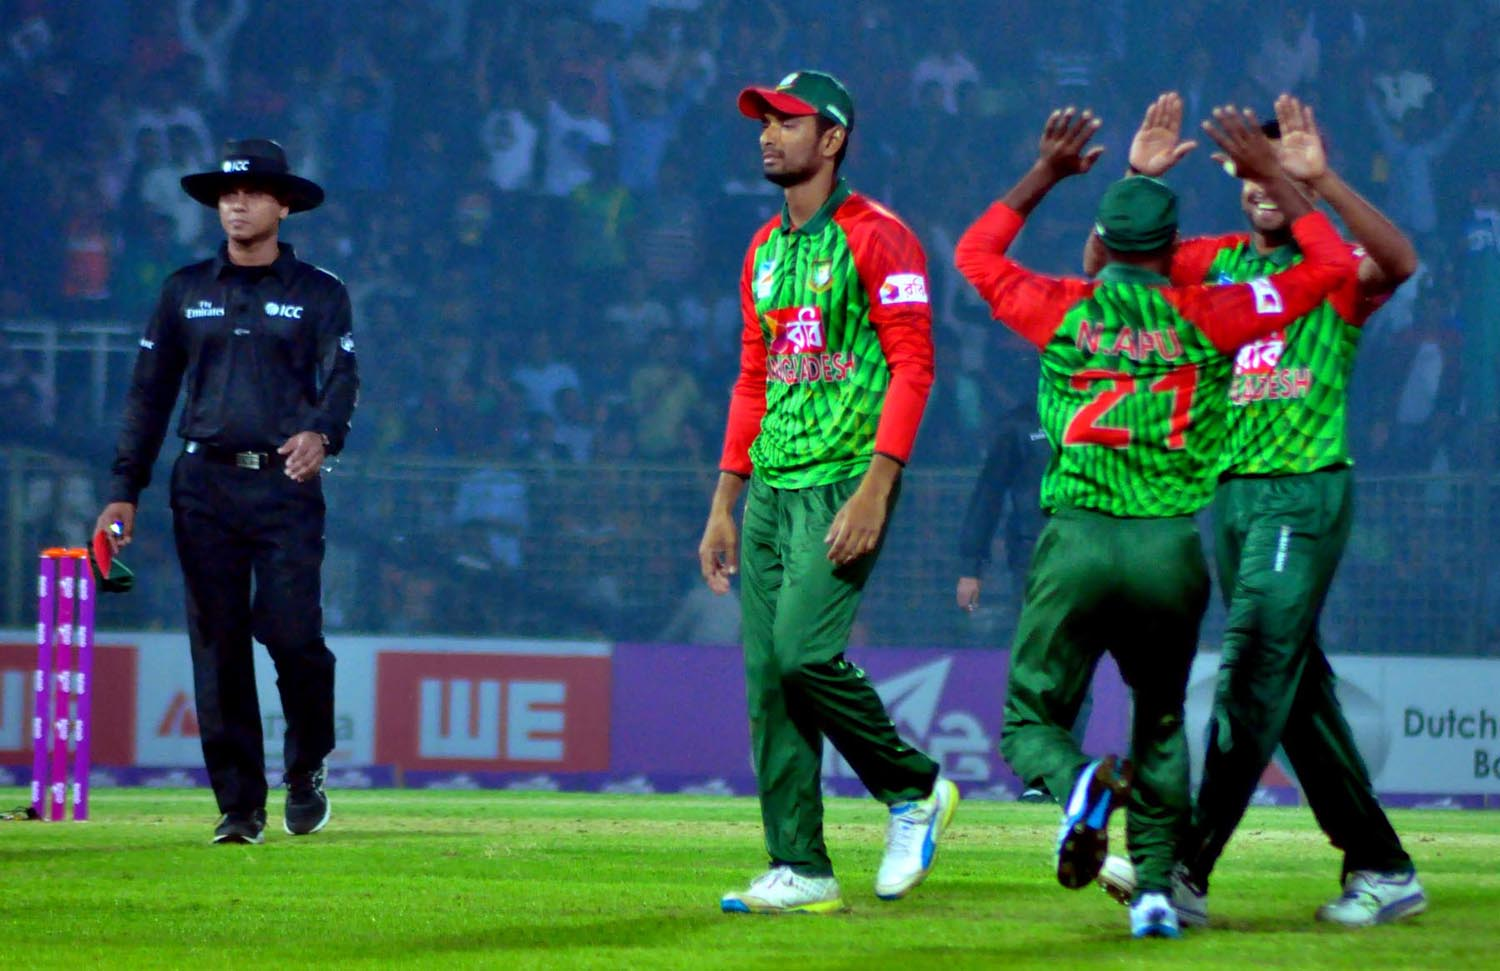 Players of Bangladesh Cricket team celebrating after dismissal of a Sri Lanka wicket during the 2nd Twenty20 International Cricket match between Bangladesh and Sri Lanka at Sylhet International Cricket Stadium in Sylhet on Sunday.